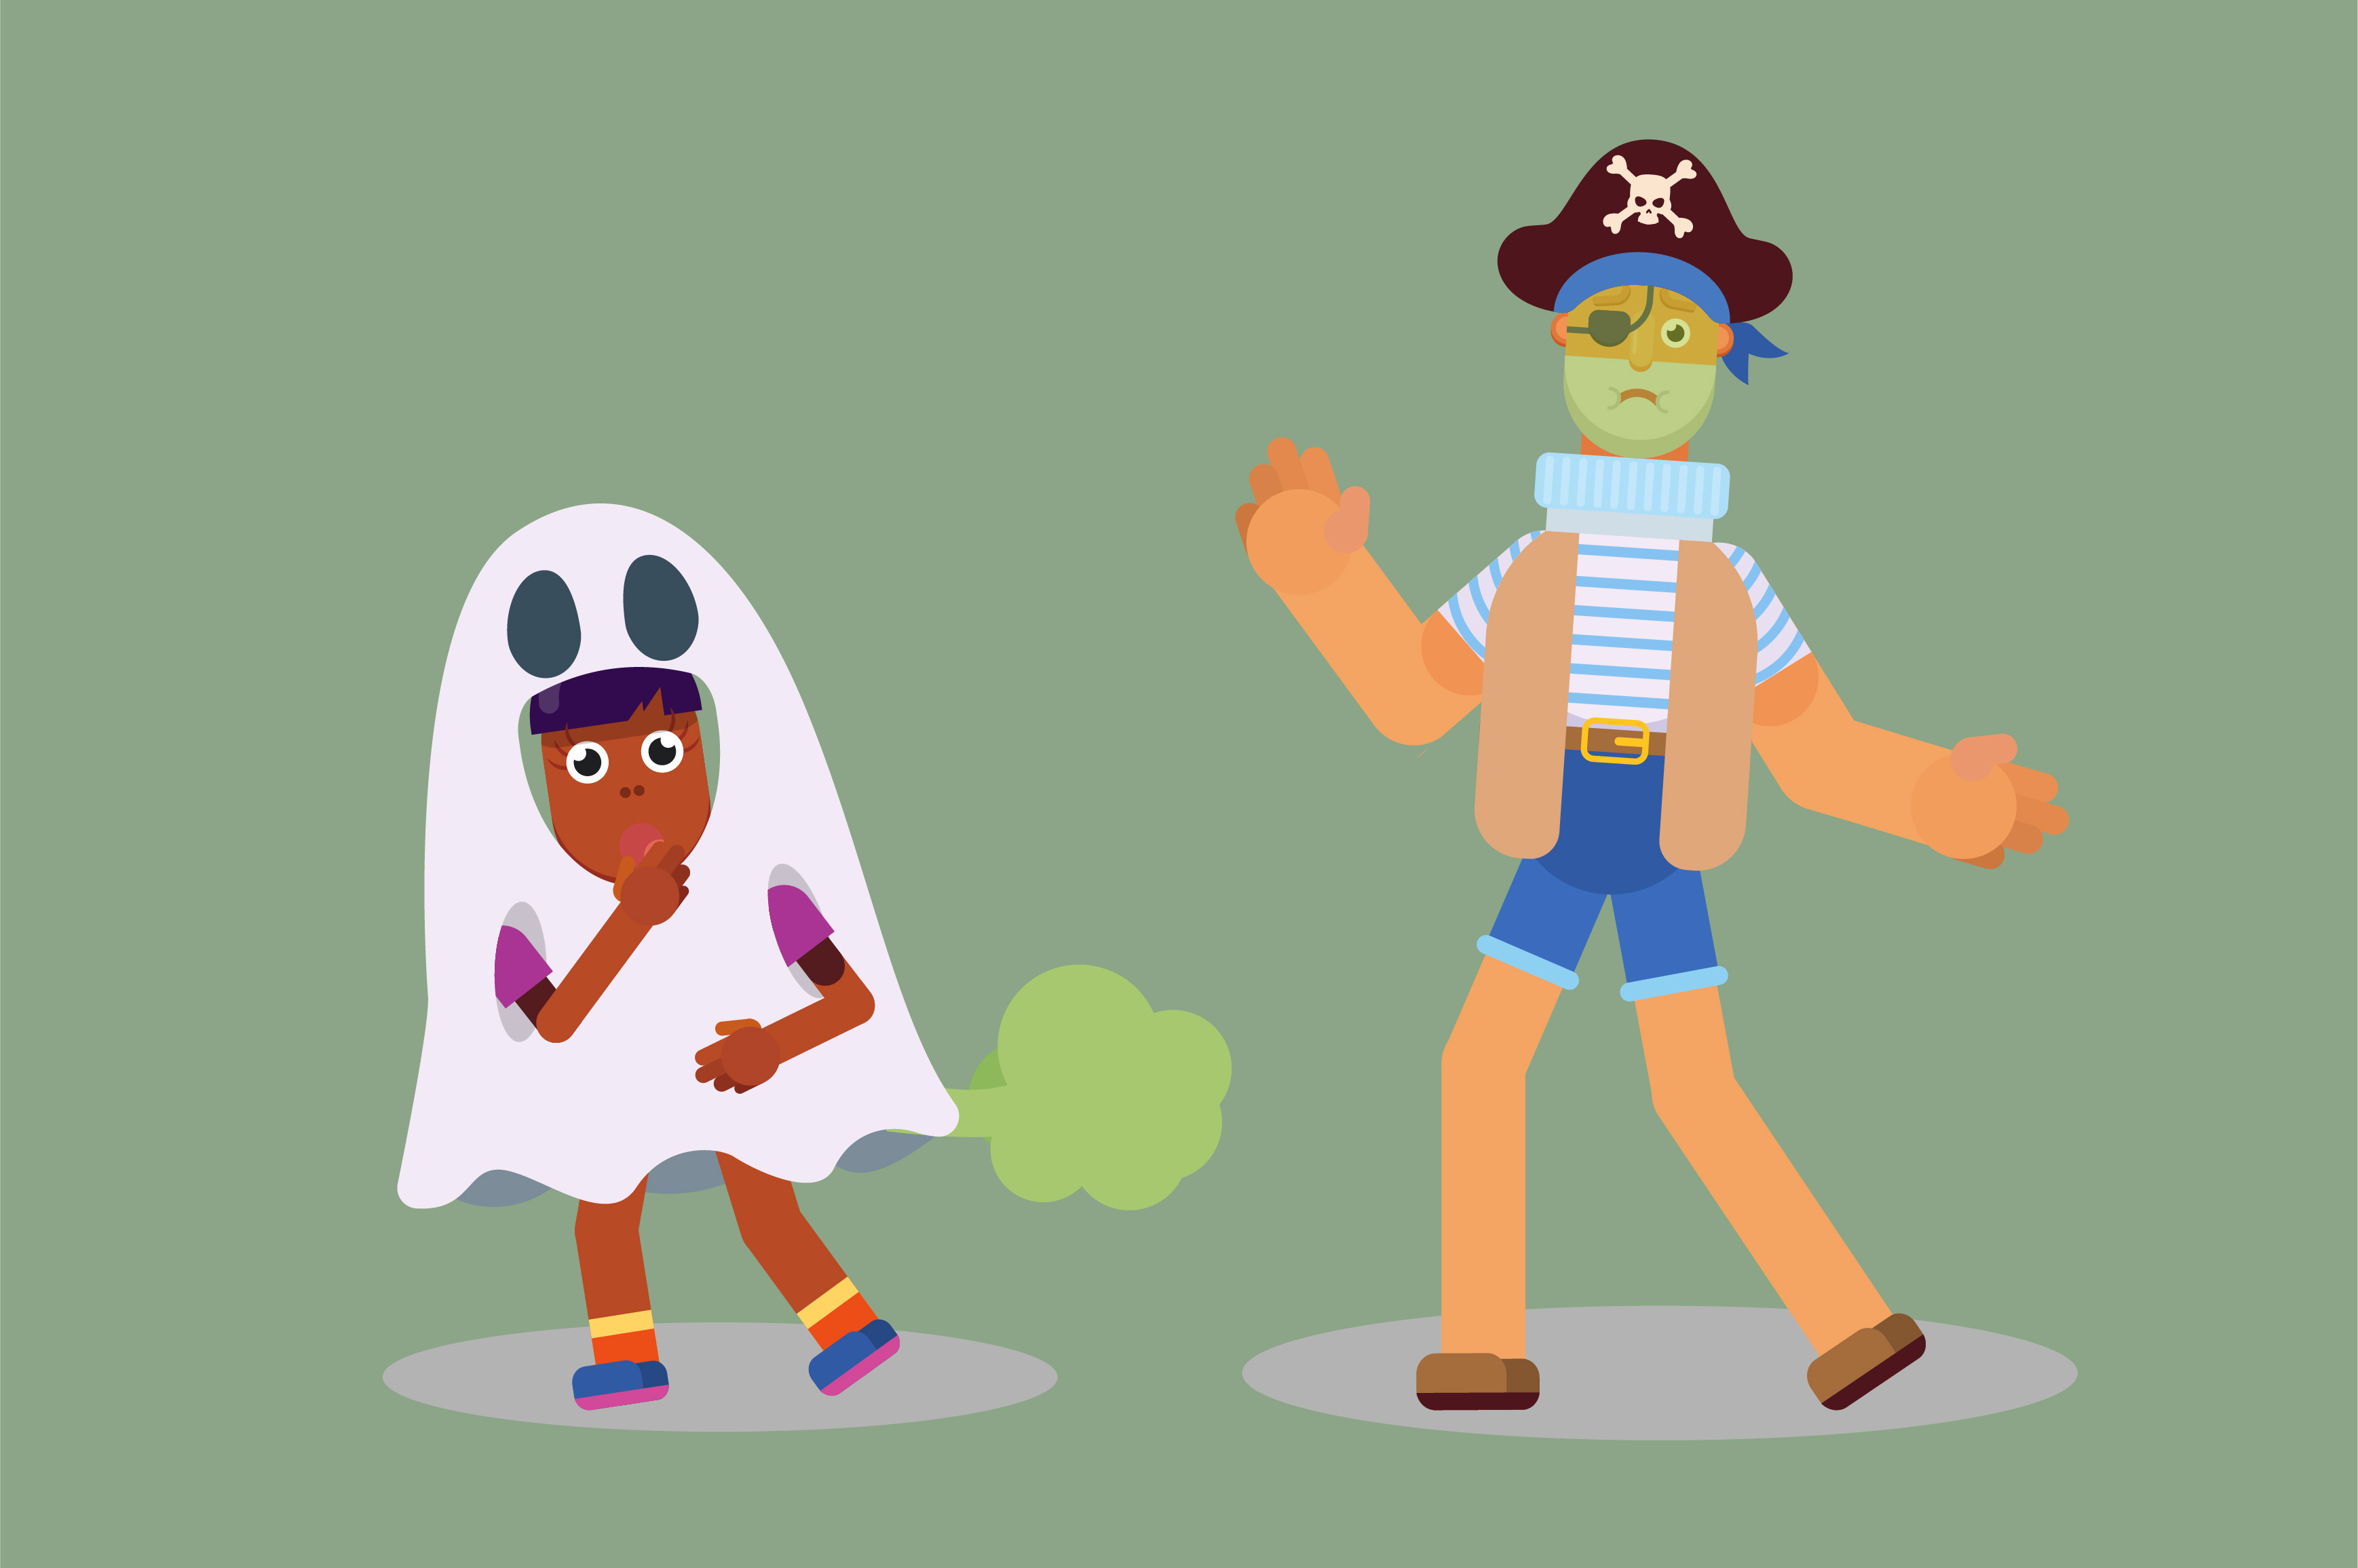 Download Free Characters A Pirate And A Weird Kid Graphic By Altumfatih for Cricut Explore, Silhouette and other cutting machines.